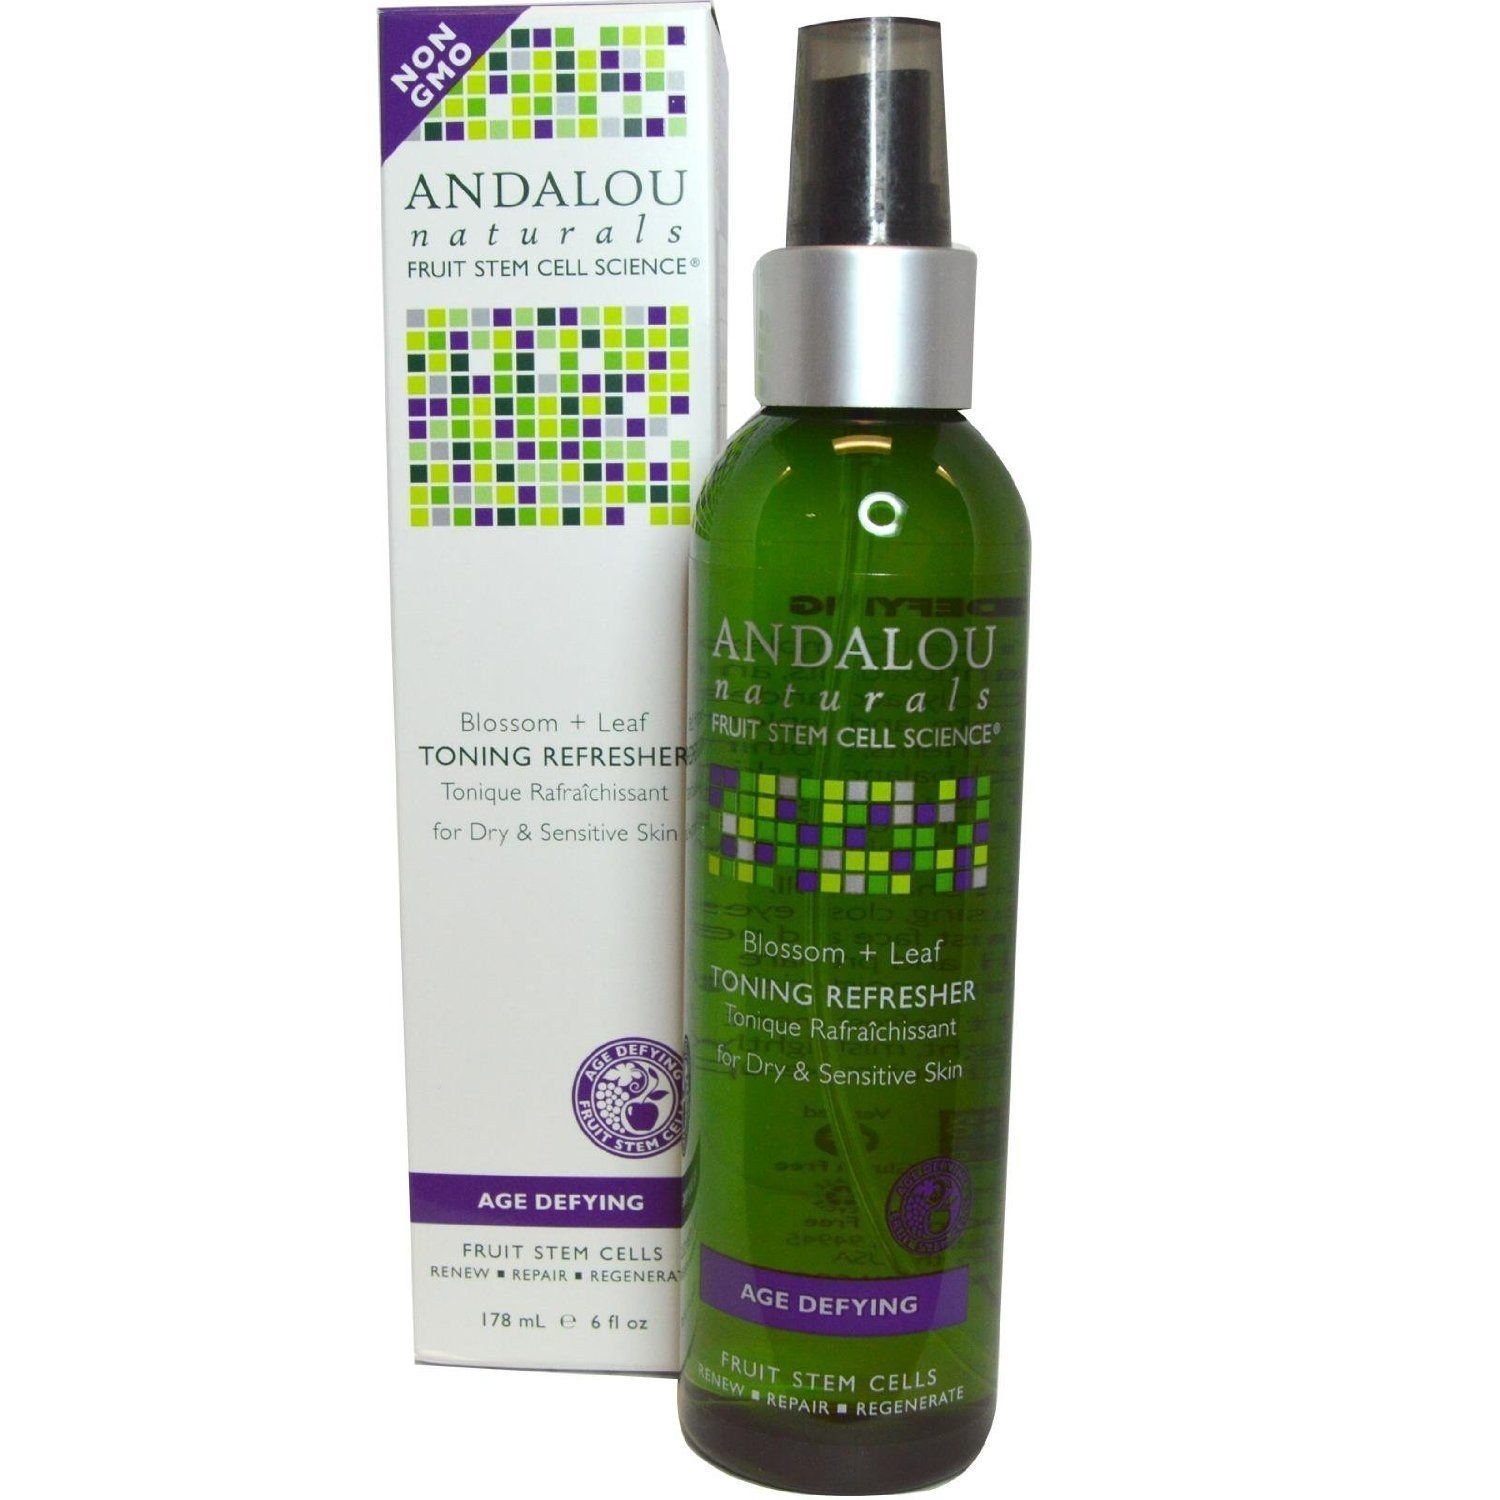 ANDALOU NATURALS Toning Refresher Blossom + Leaf Age